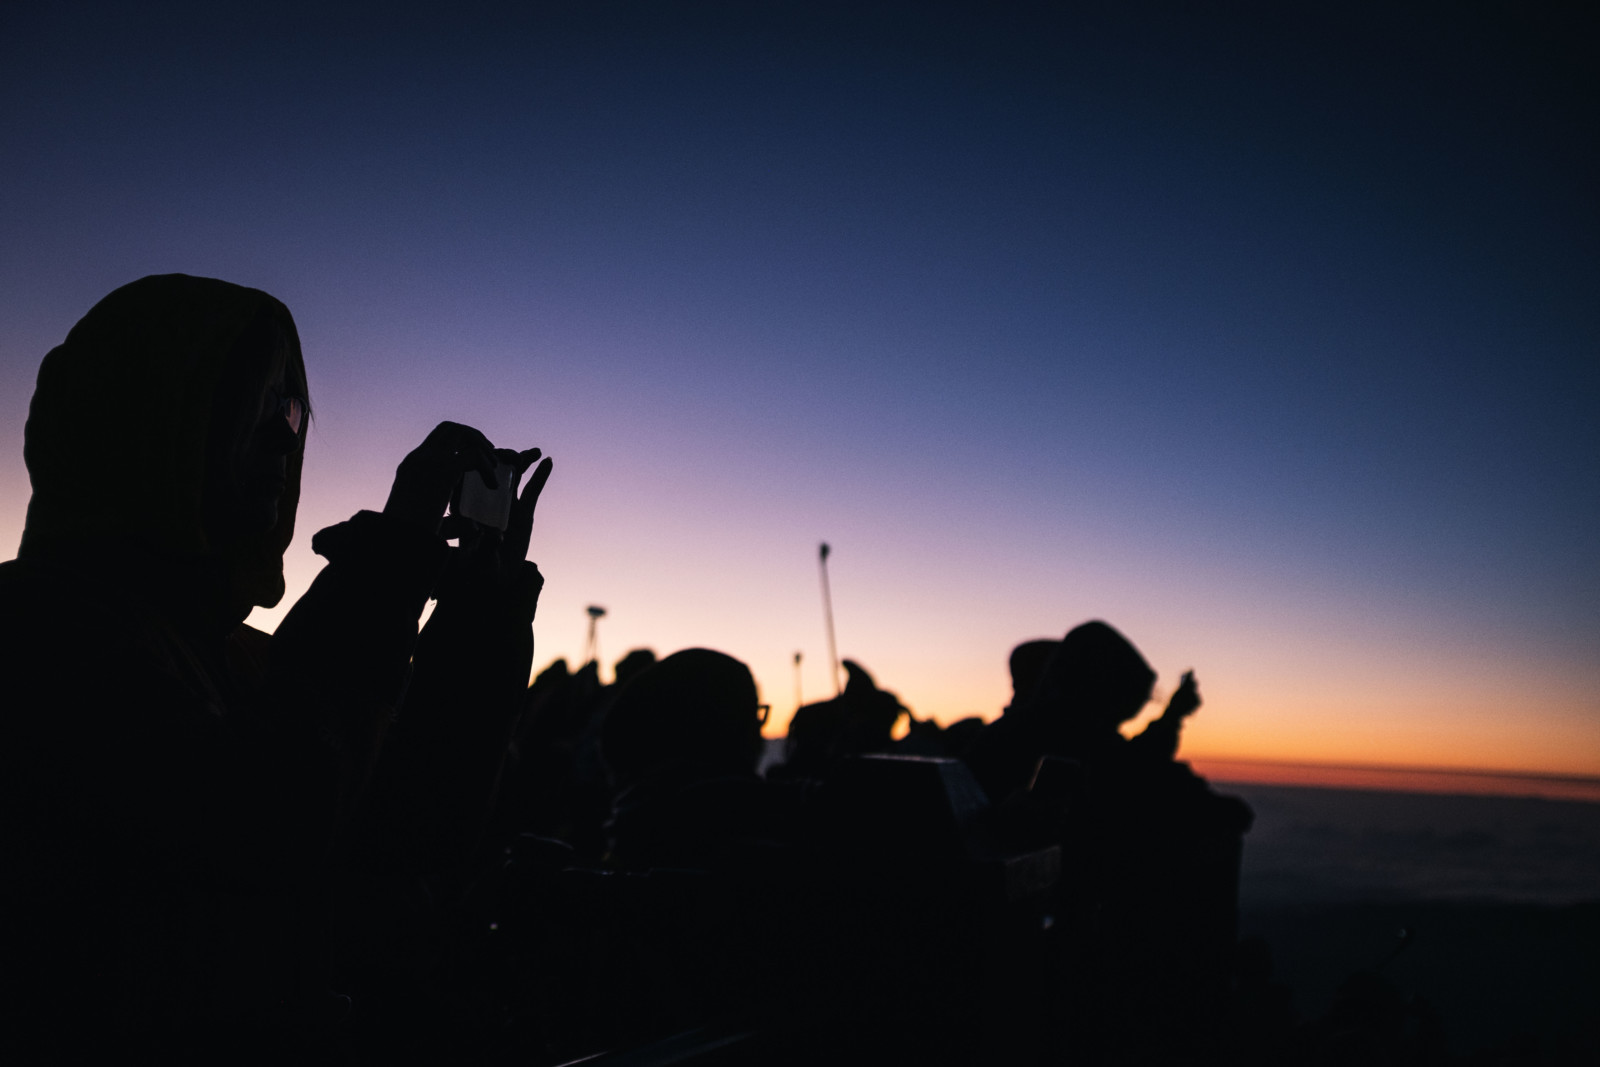 Bromo - Silhouette Photography